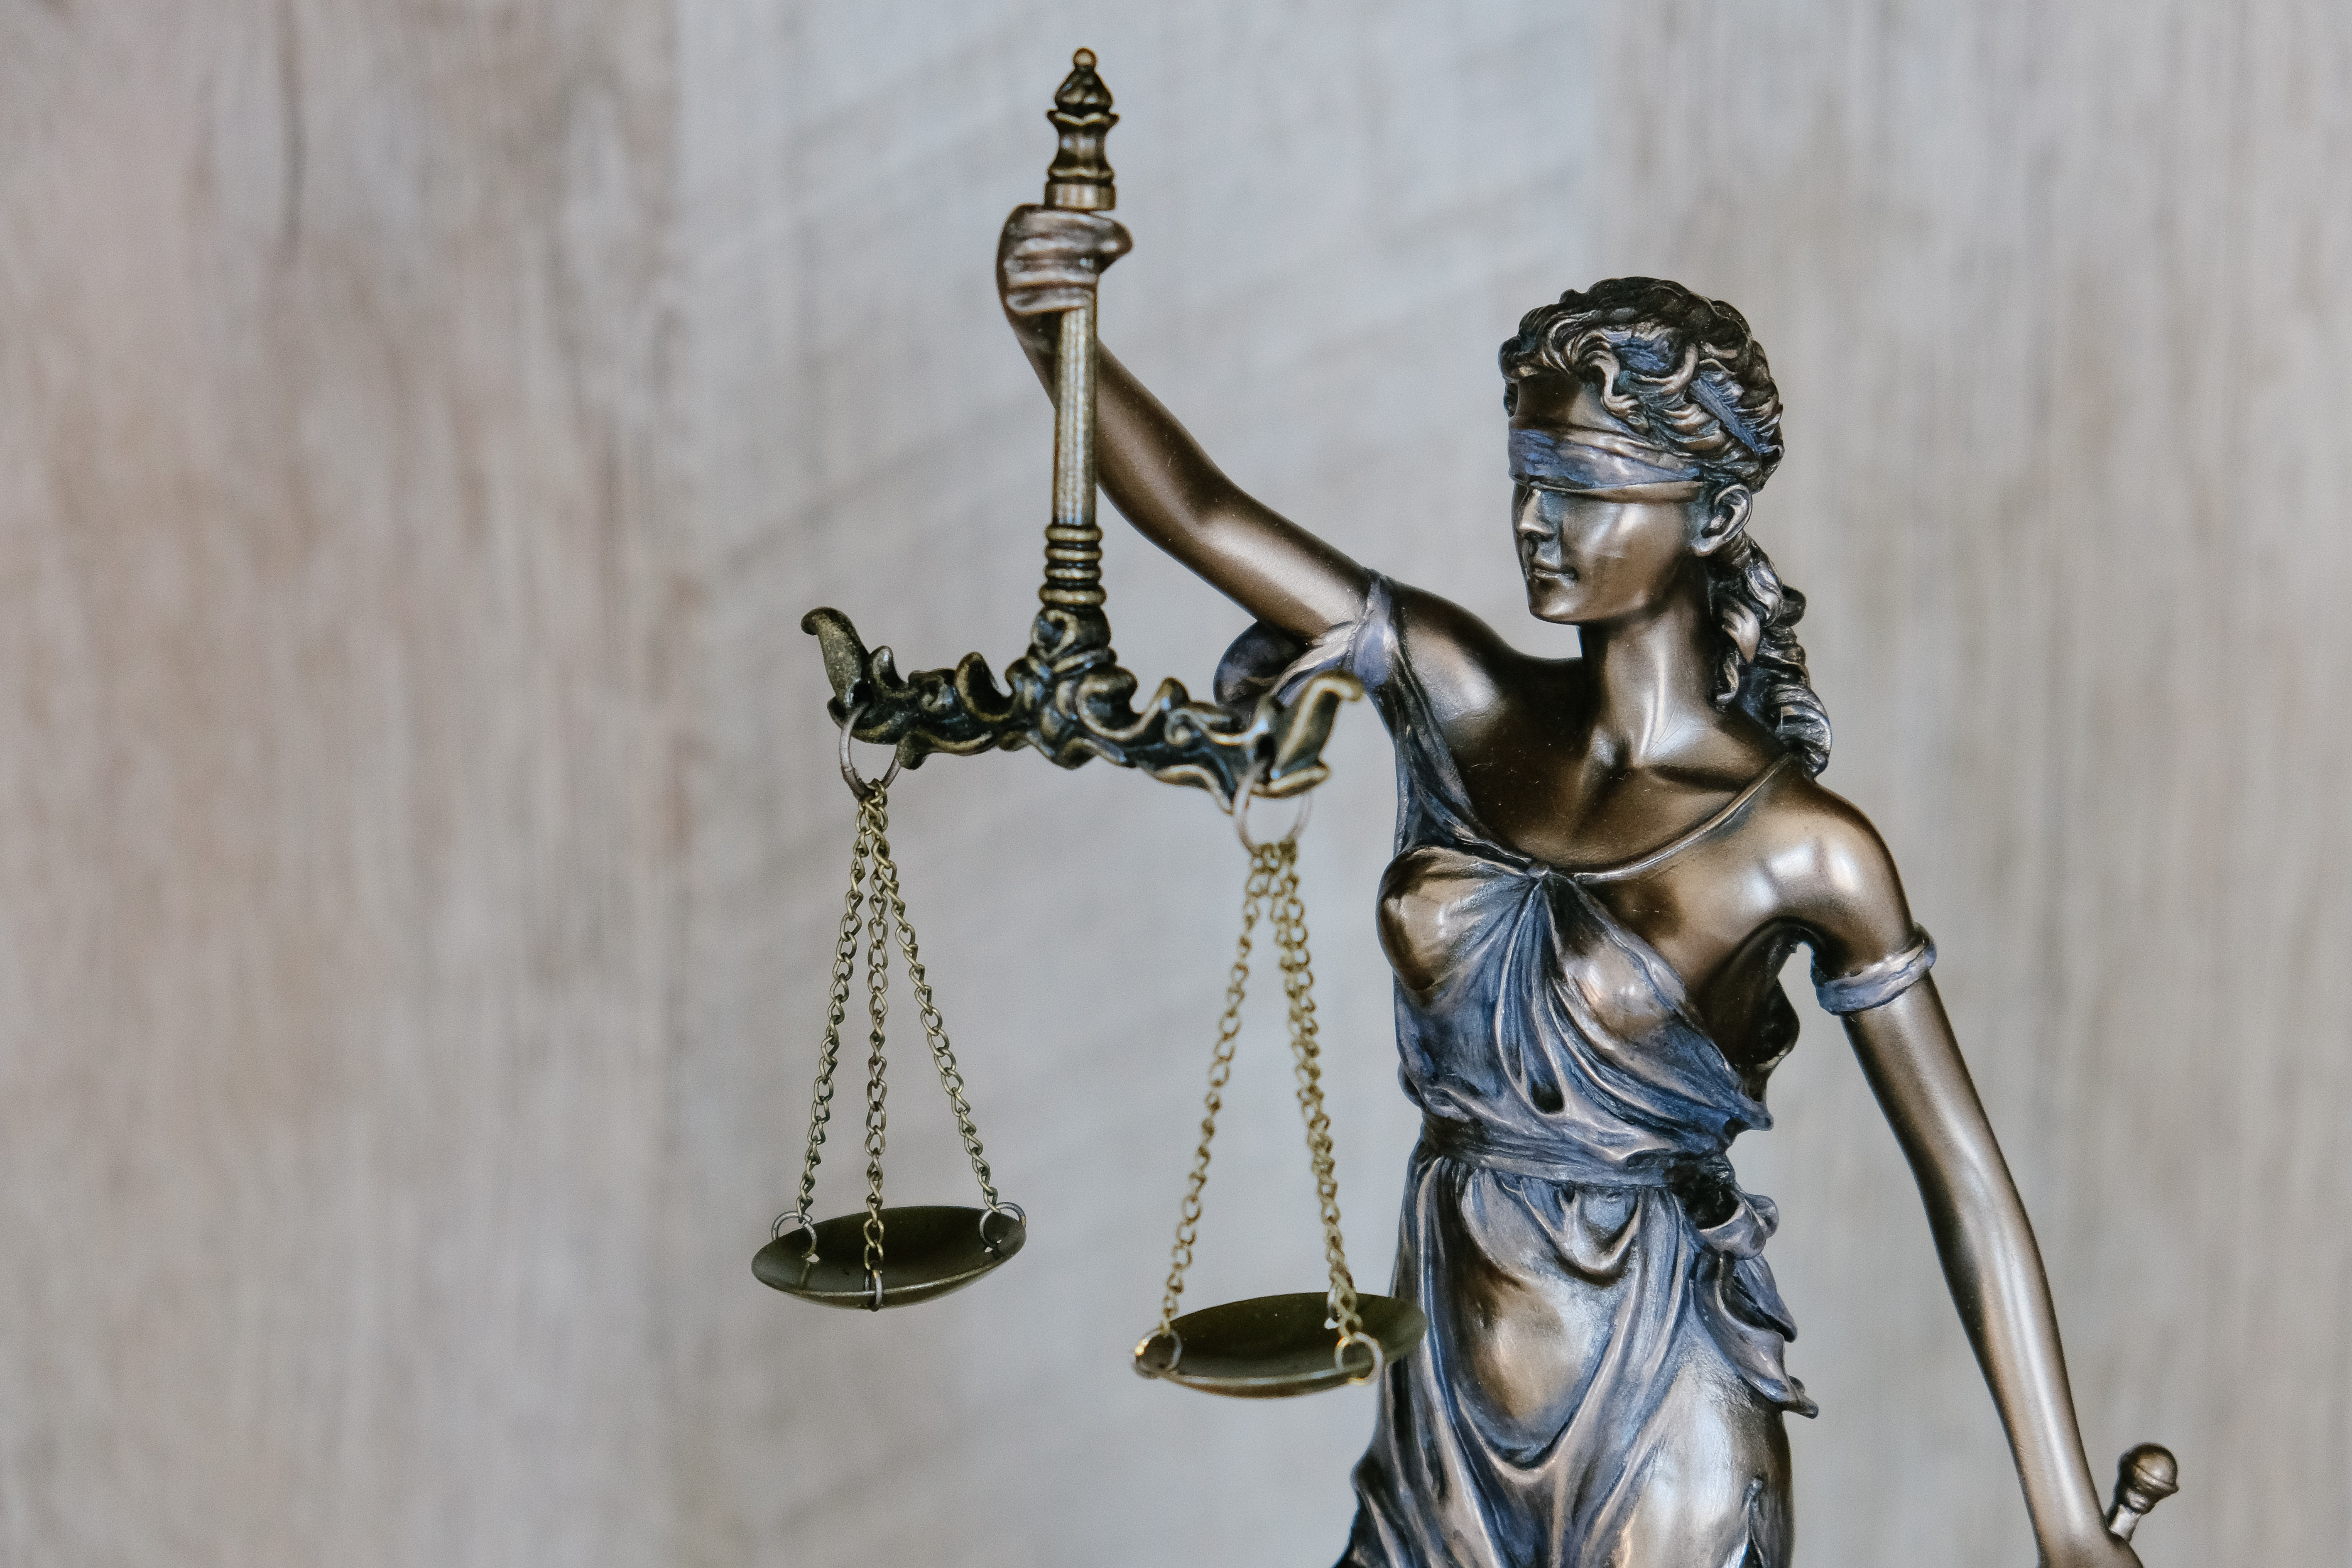 statute of a woman holding scales